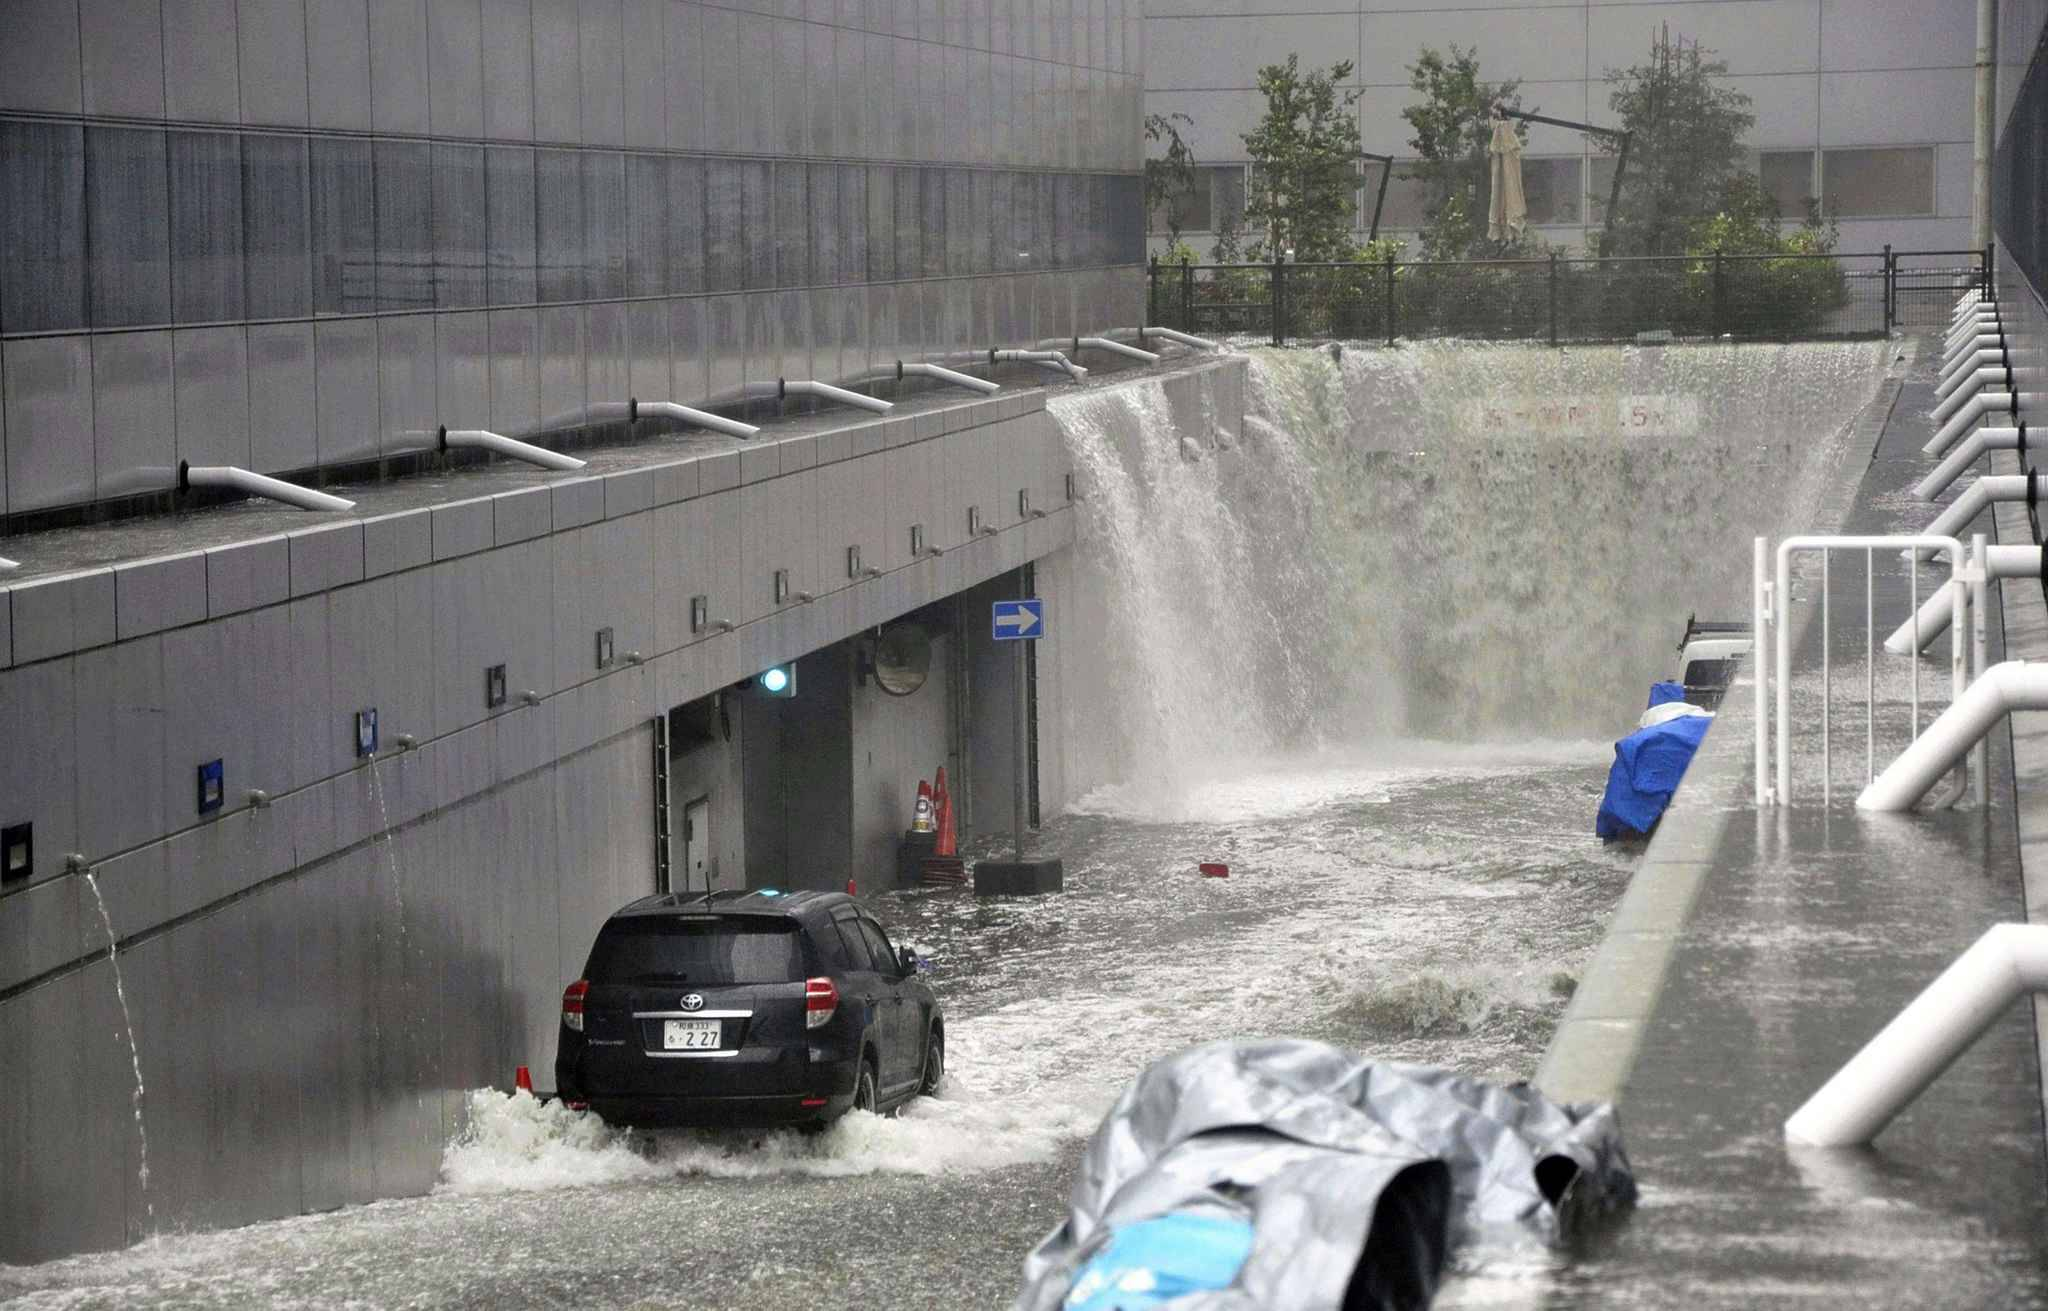 Water of high waves due to Tyhoon Jebi flood into the building at Kansai International Airport in Osaka Prefecture on Sep. 4, 2018. All the flight has been canceled since same day noon. Jedi made a landfall on Tokushima Prefecture in noon and forecasted to move along the coasts of Japan Sea of northern Japan. Violent winds, high waves and heavy rains are forecasted in wide area of Japan till next day.